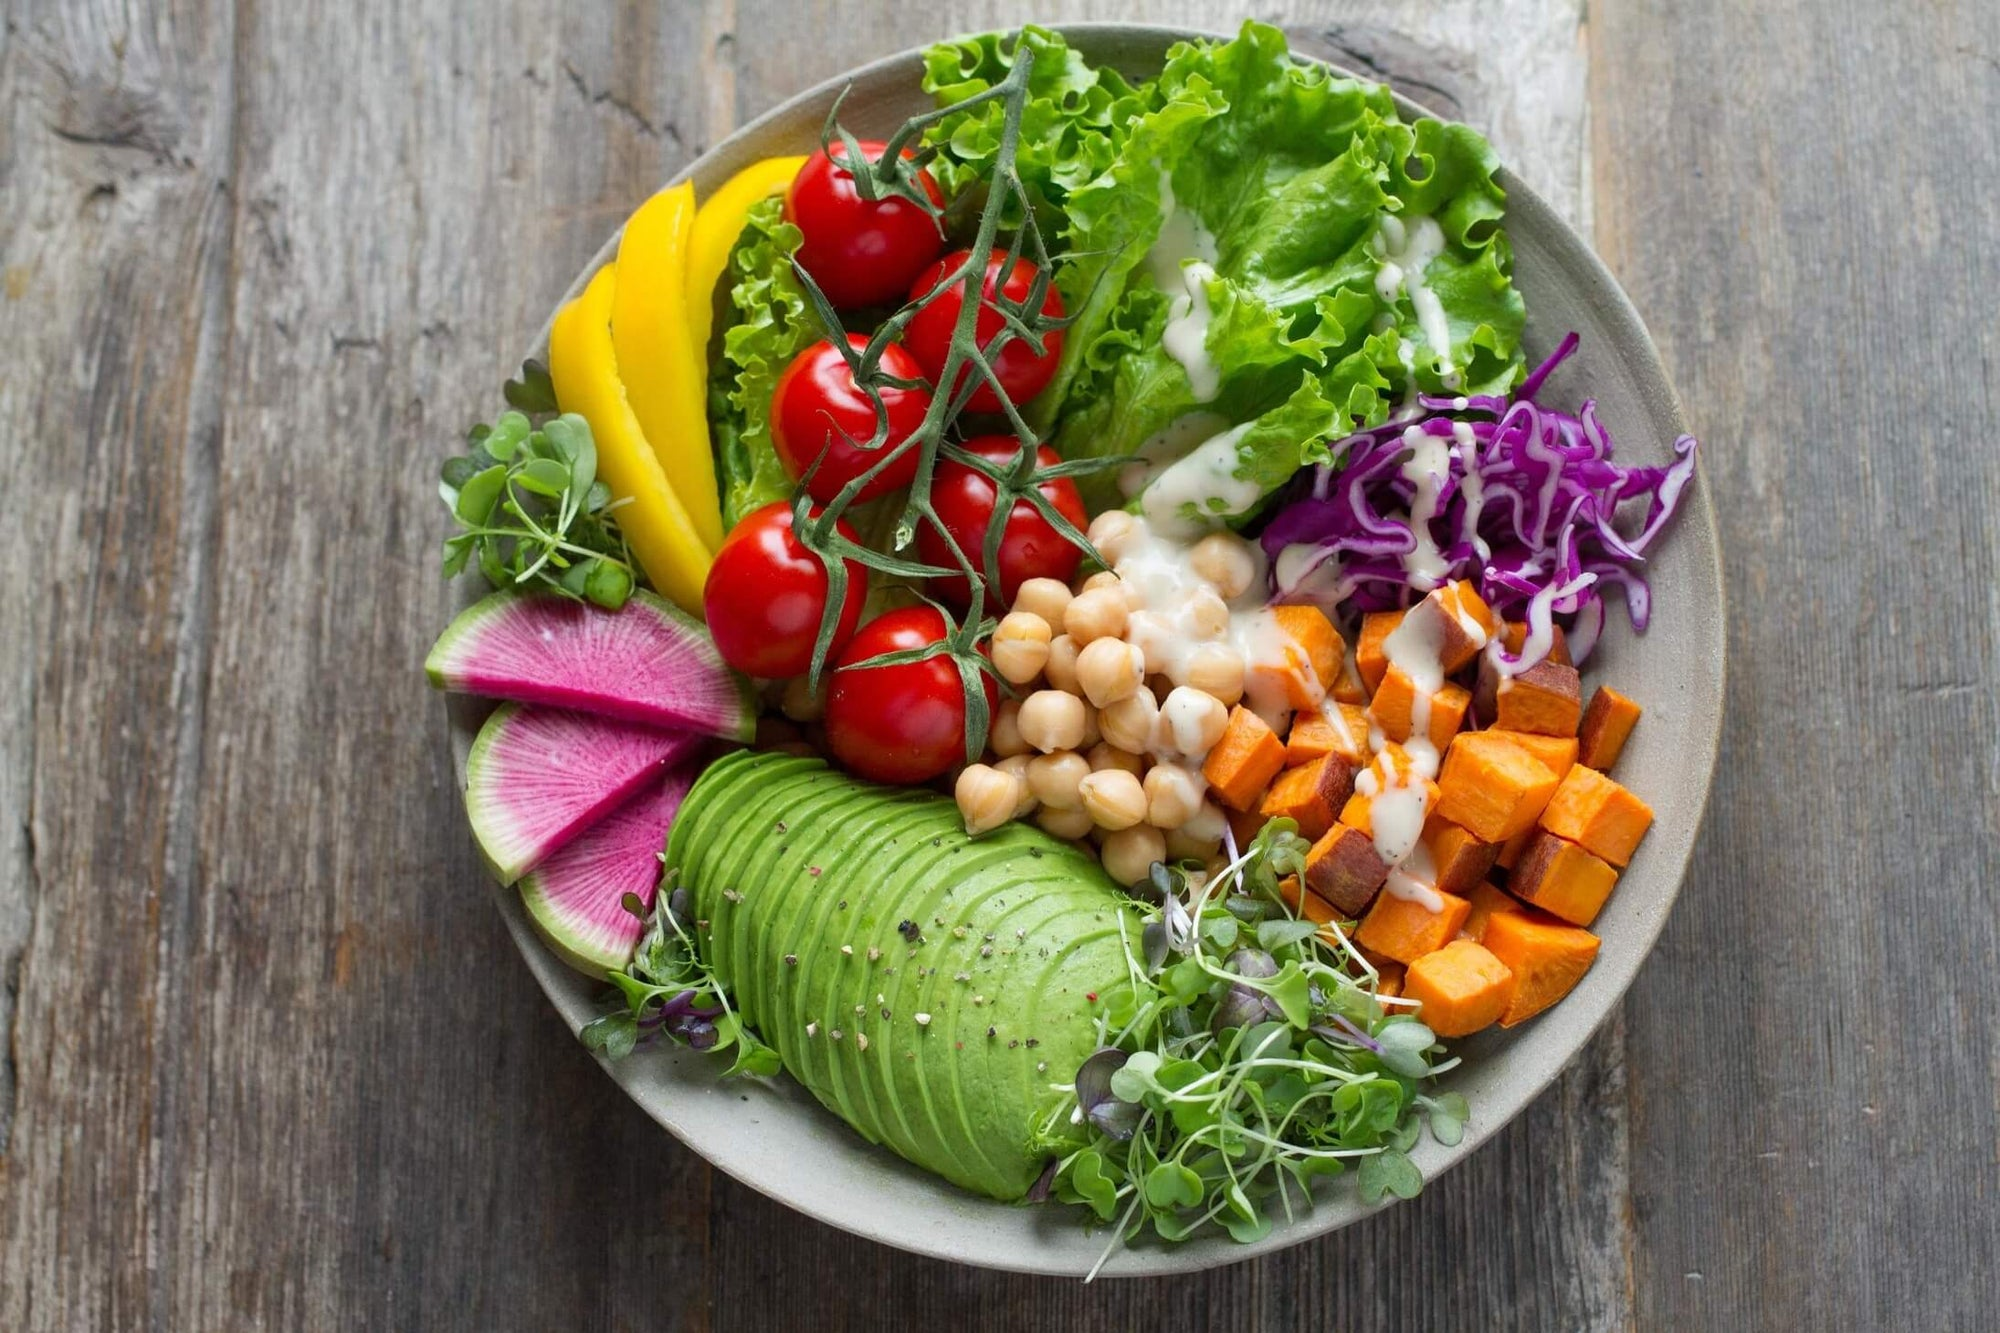 How Going Vegan Can Help You Lose Weight